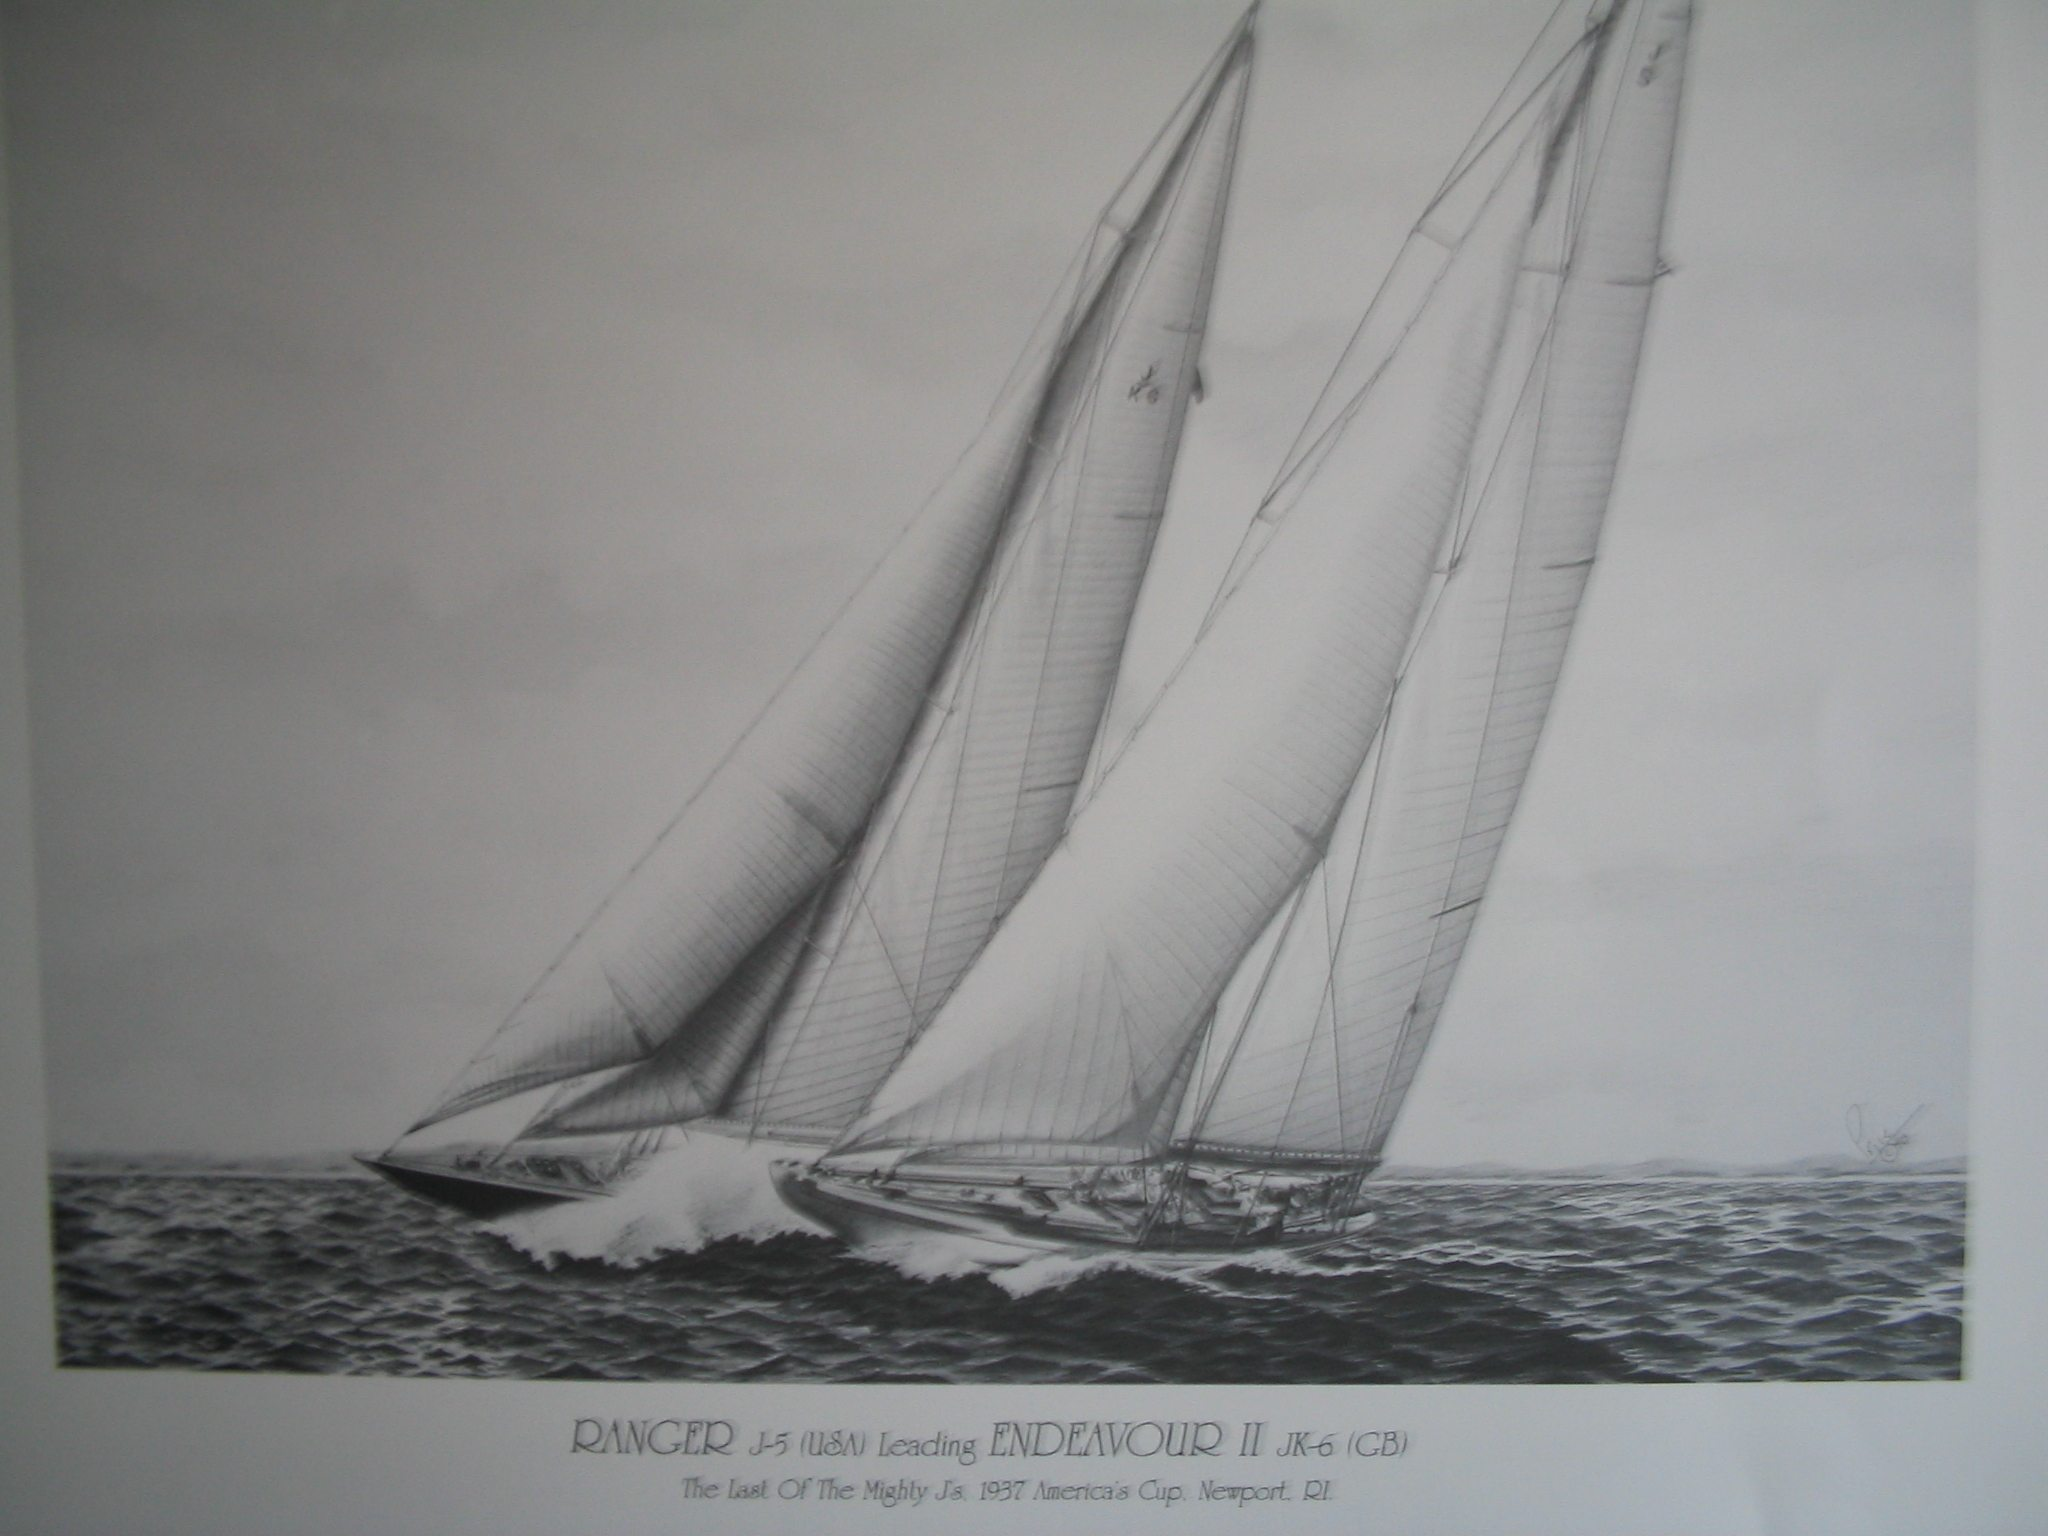 Ranger vs Endeavour, 1937 America's Cup Pencil Drawing by Dan Price